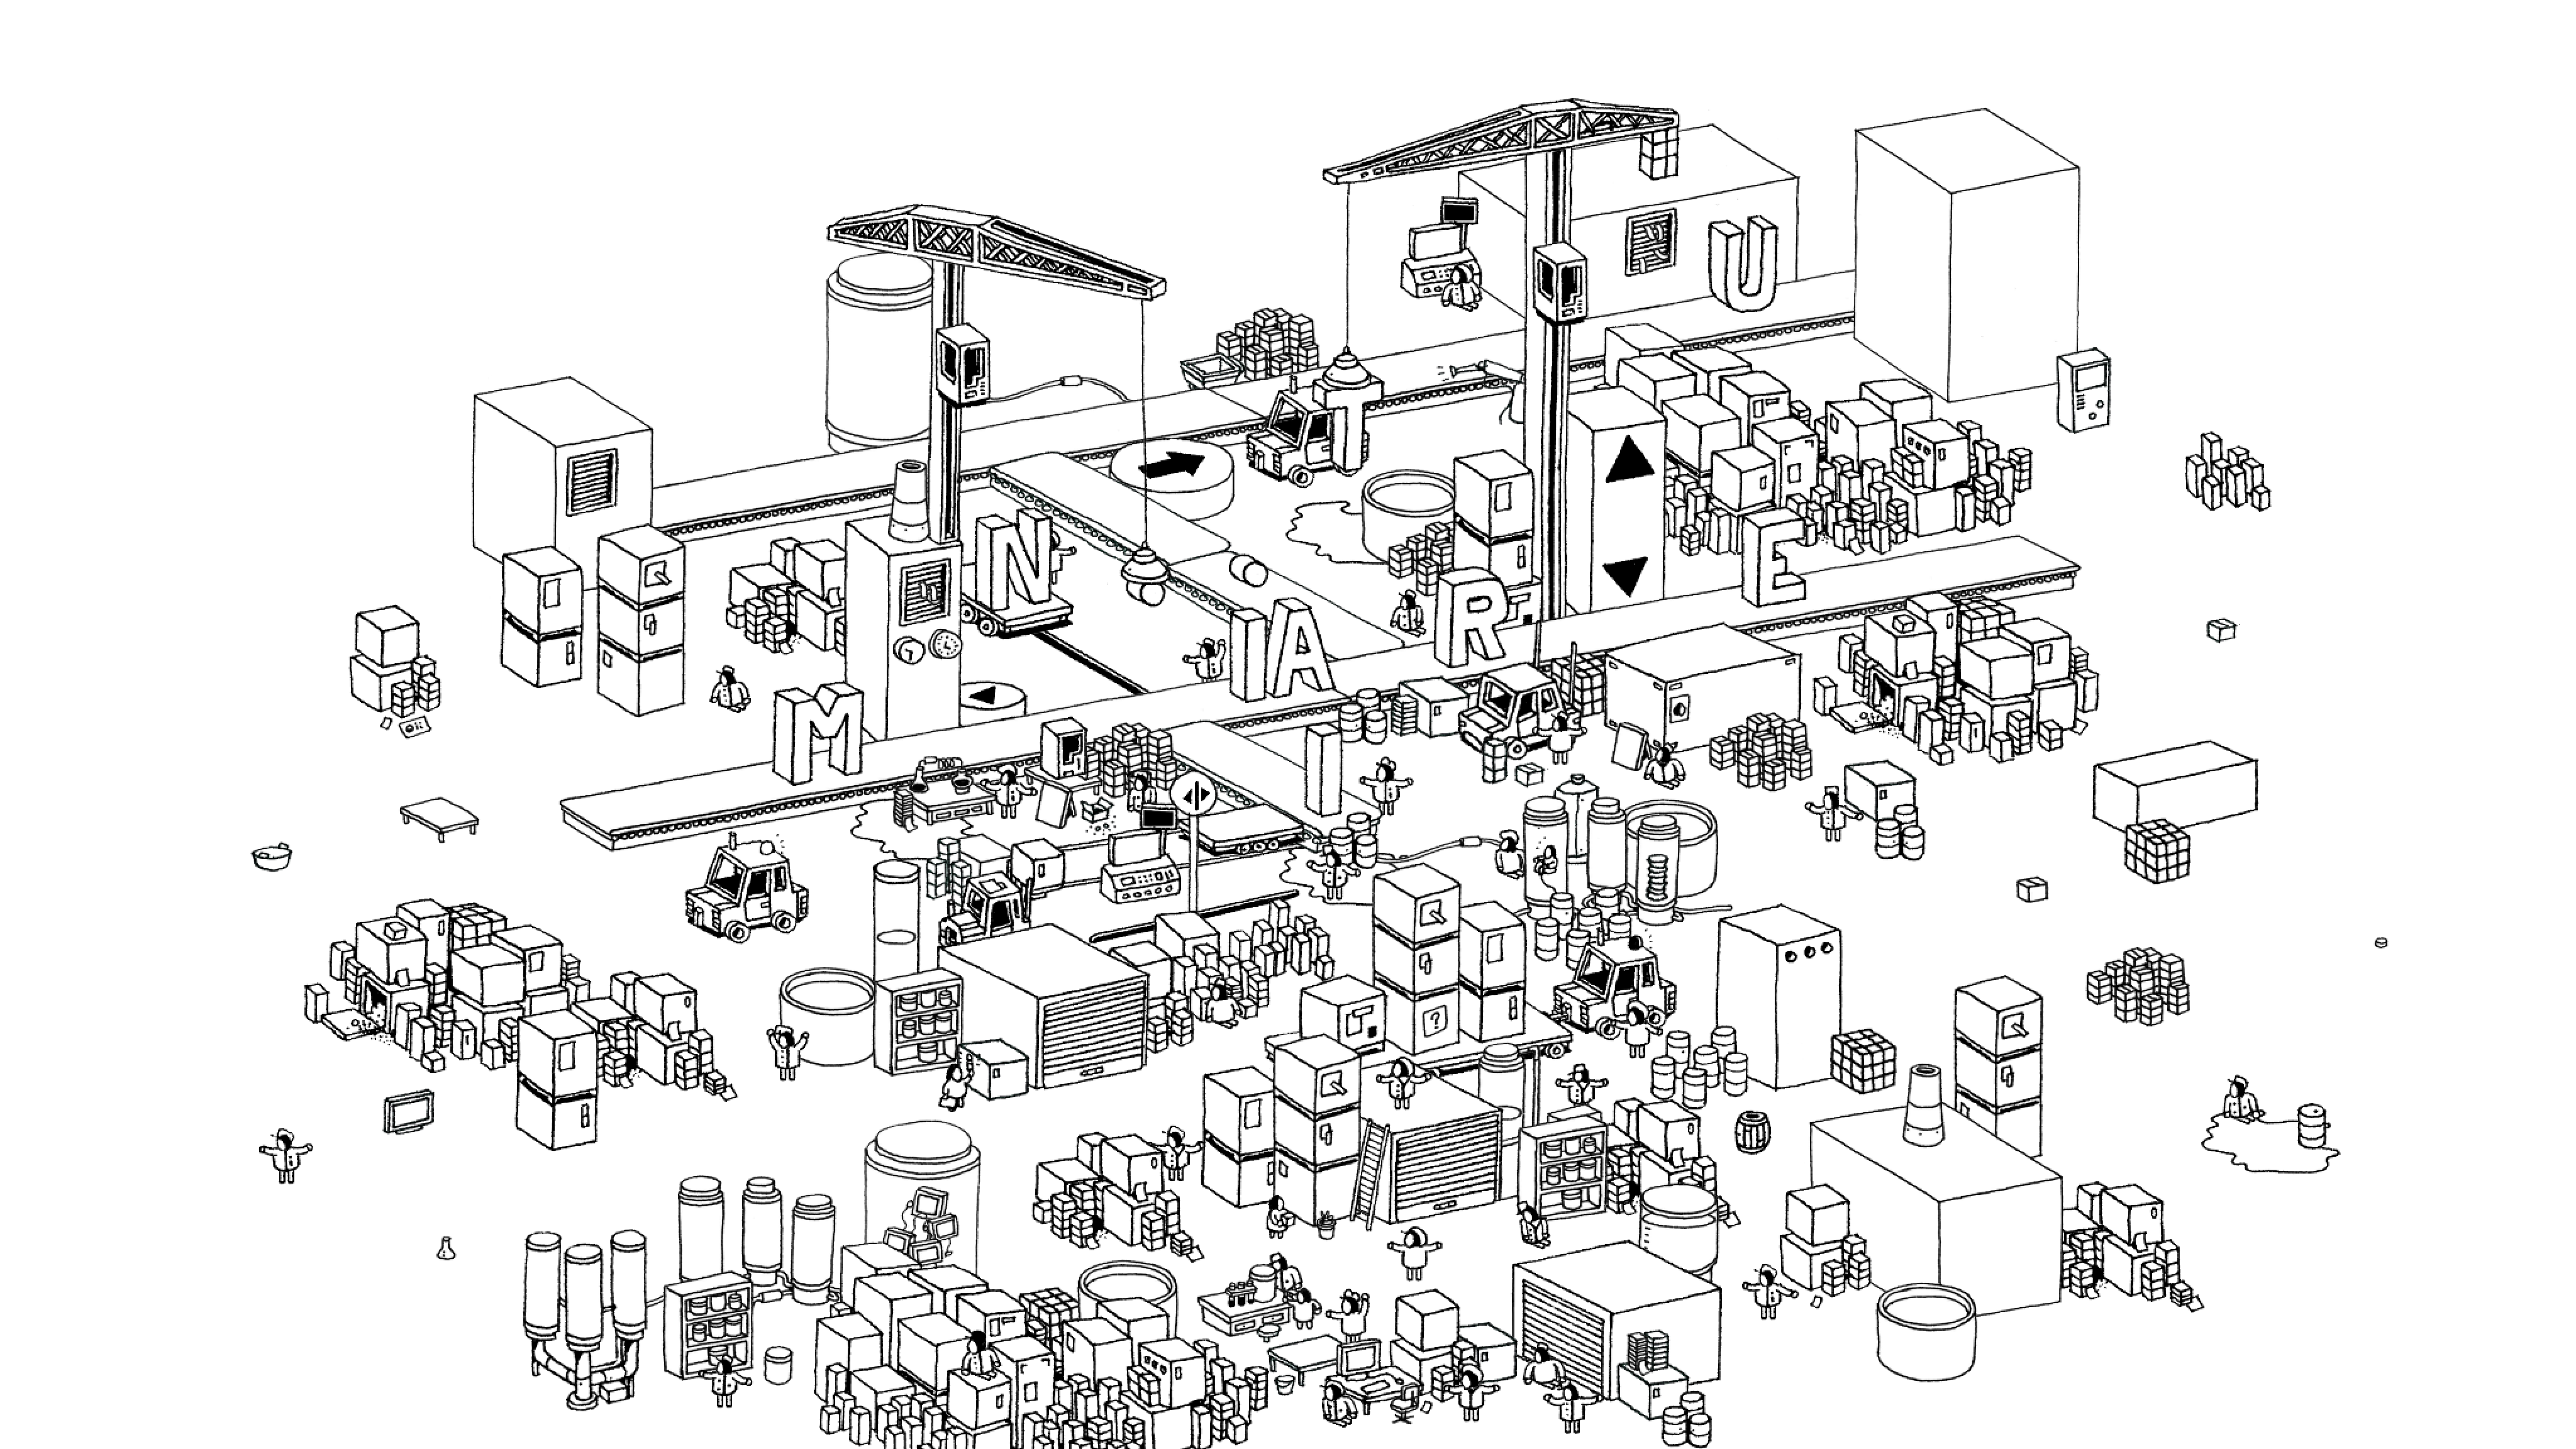 [Update] The simple puzzler, Hidden Folks, is out now on iOS